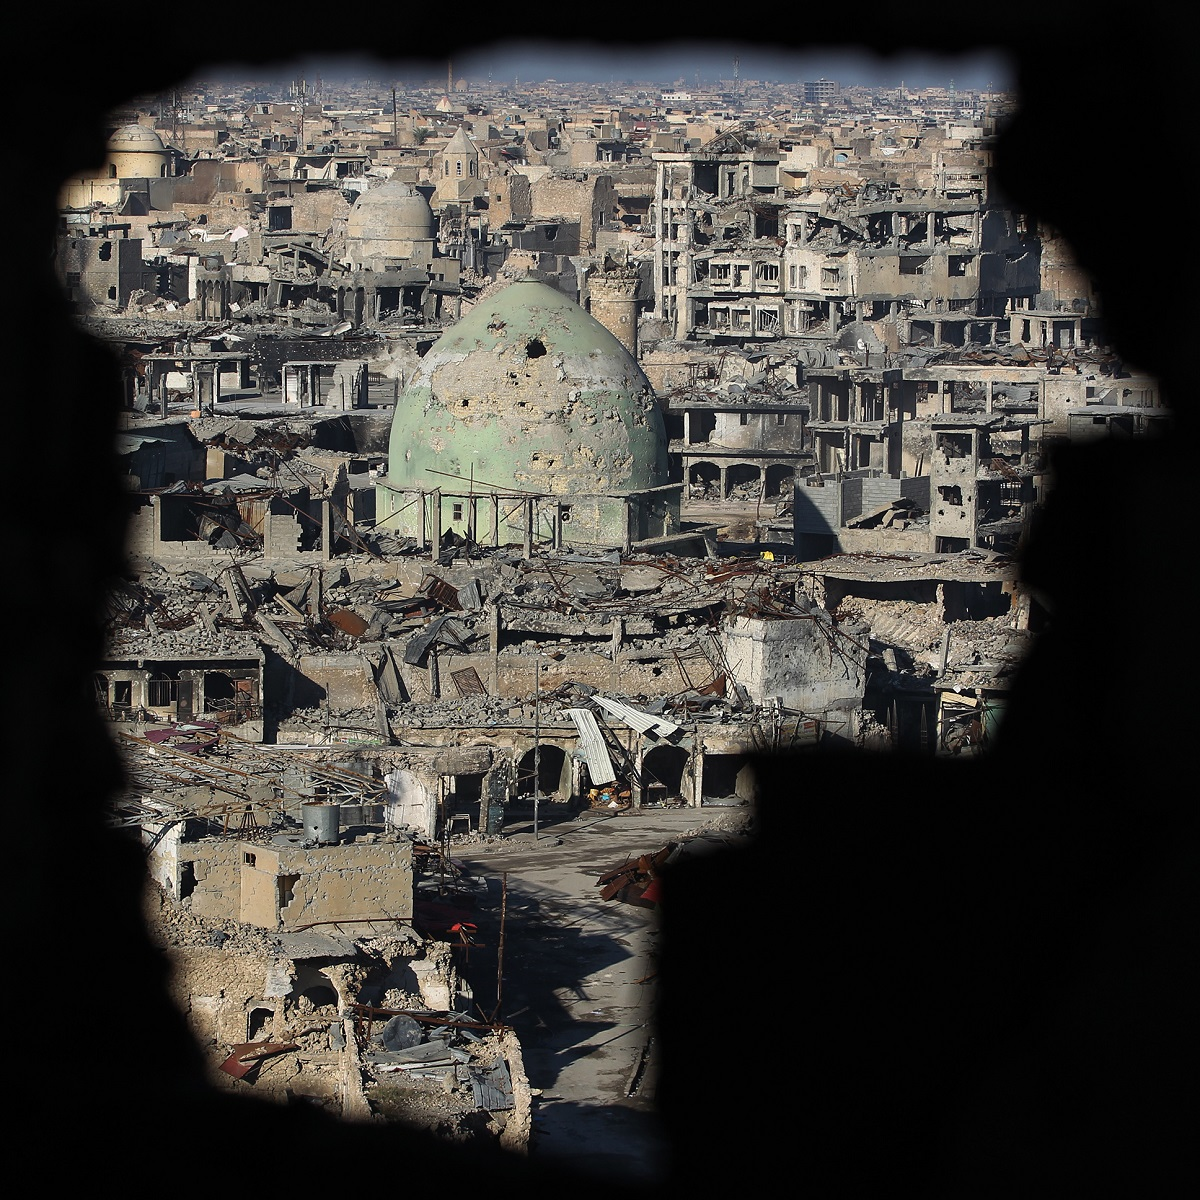 Mosul's Old City on Jan. 8, 2018, six months after Iraqi forces seized the country's second city from ISIS militants. (Ahmad al-Rubaye/AFP via Getty Images)